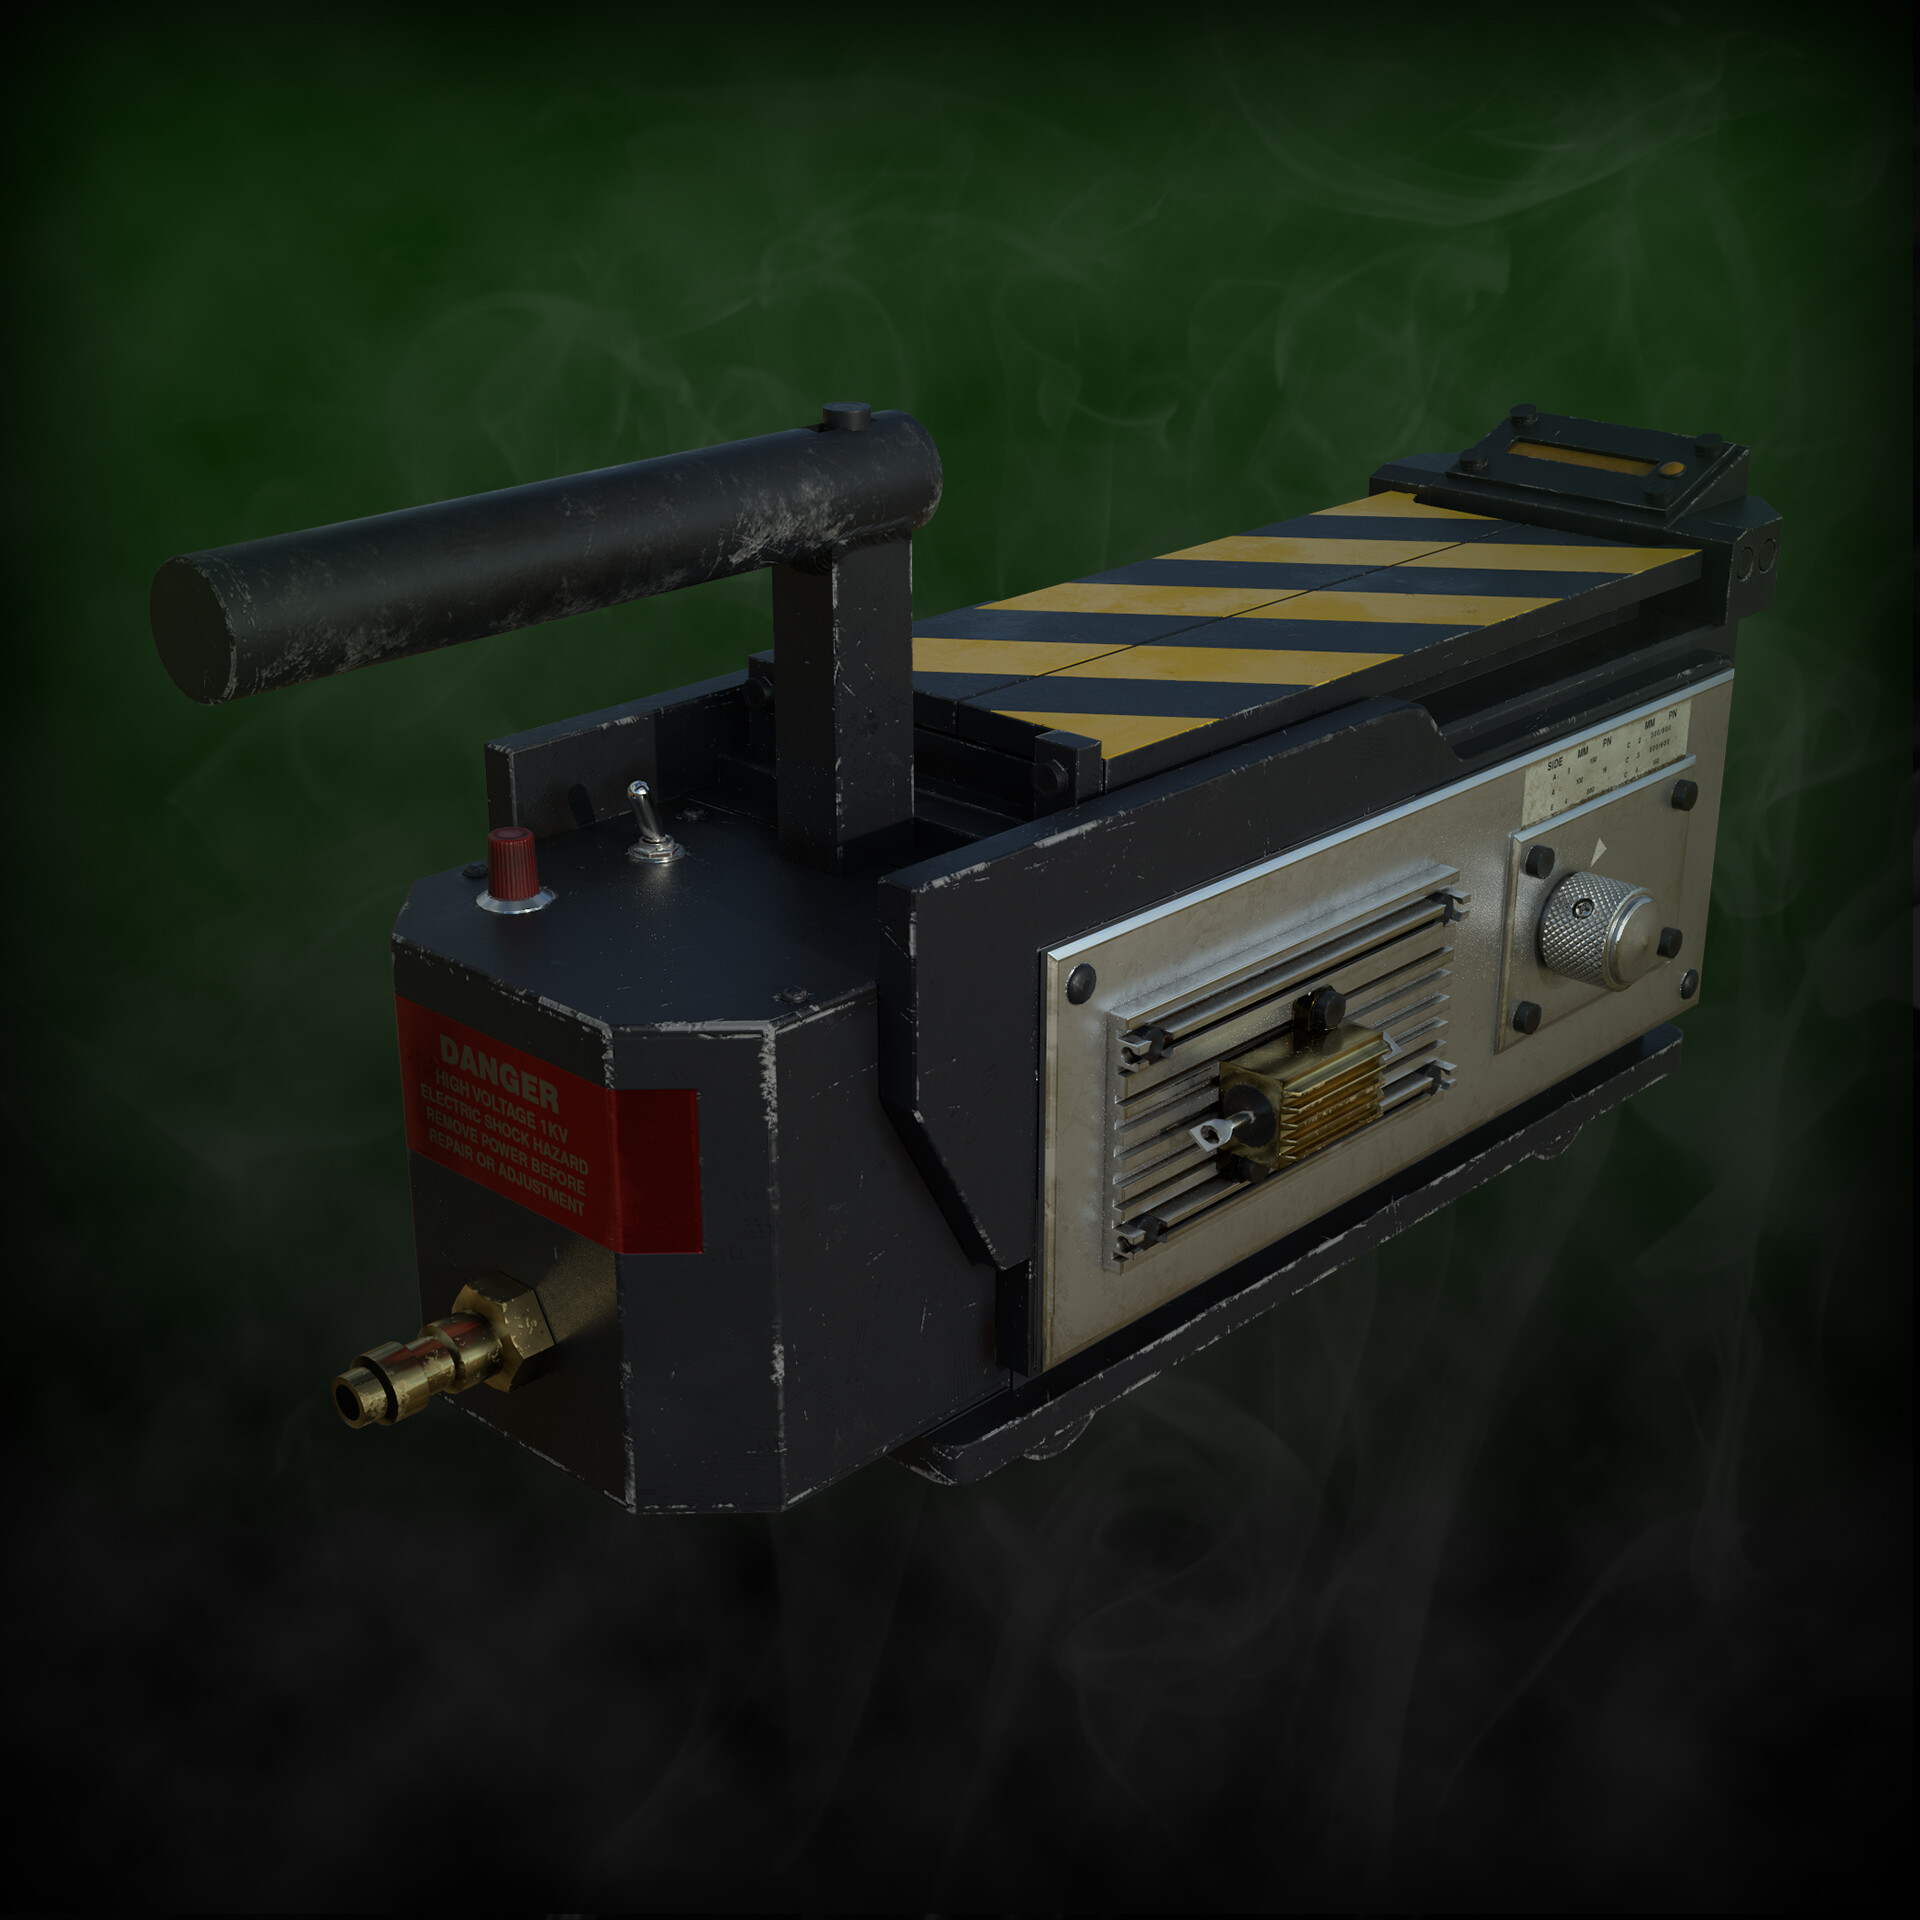 Thomas marrone ghostbusters trap combined 2019 07 14 06